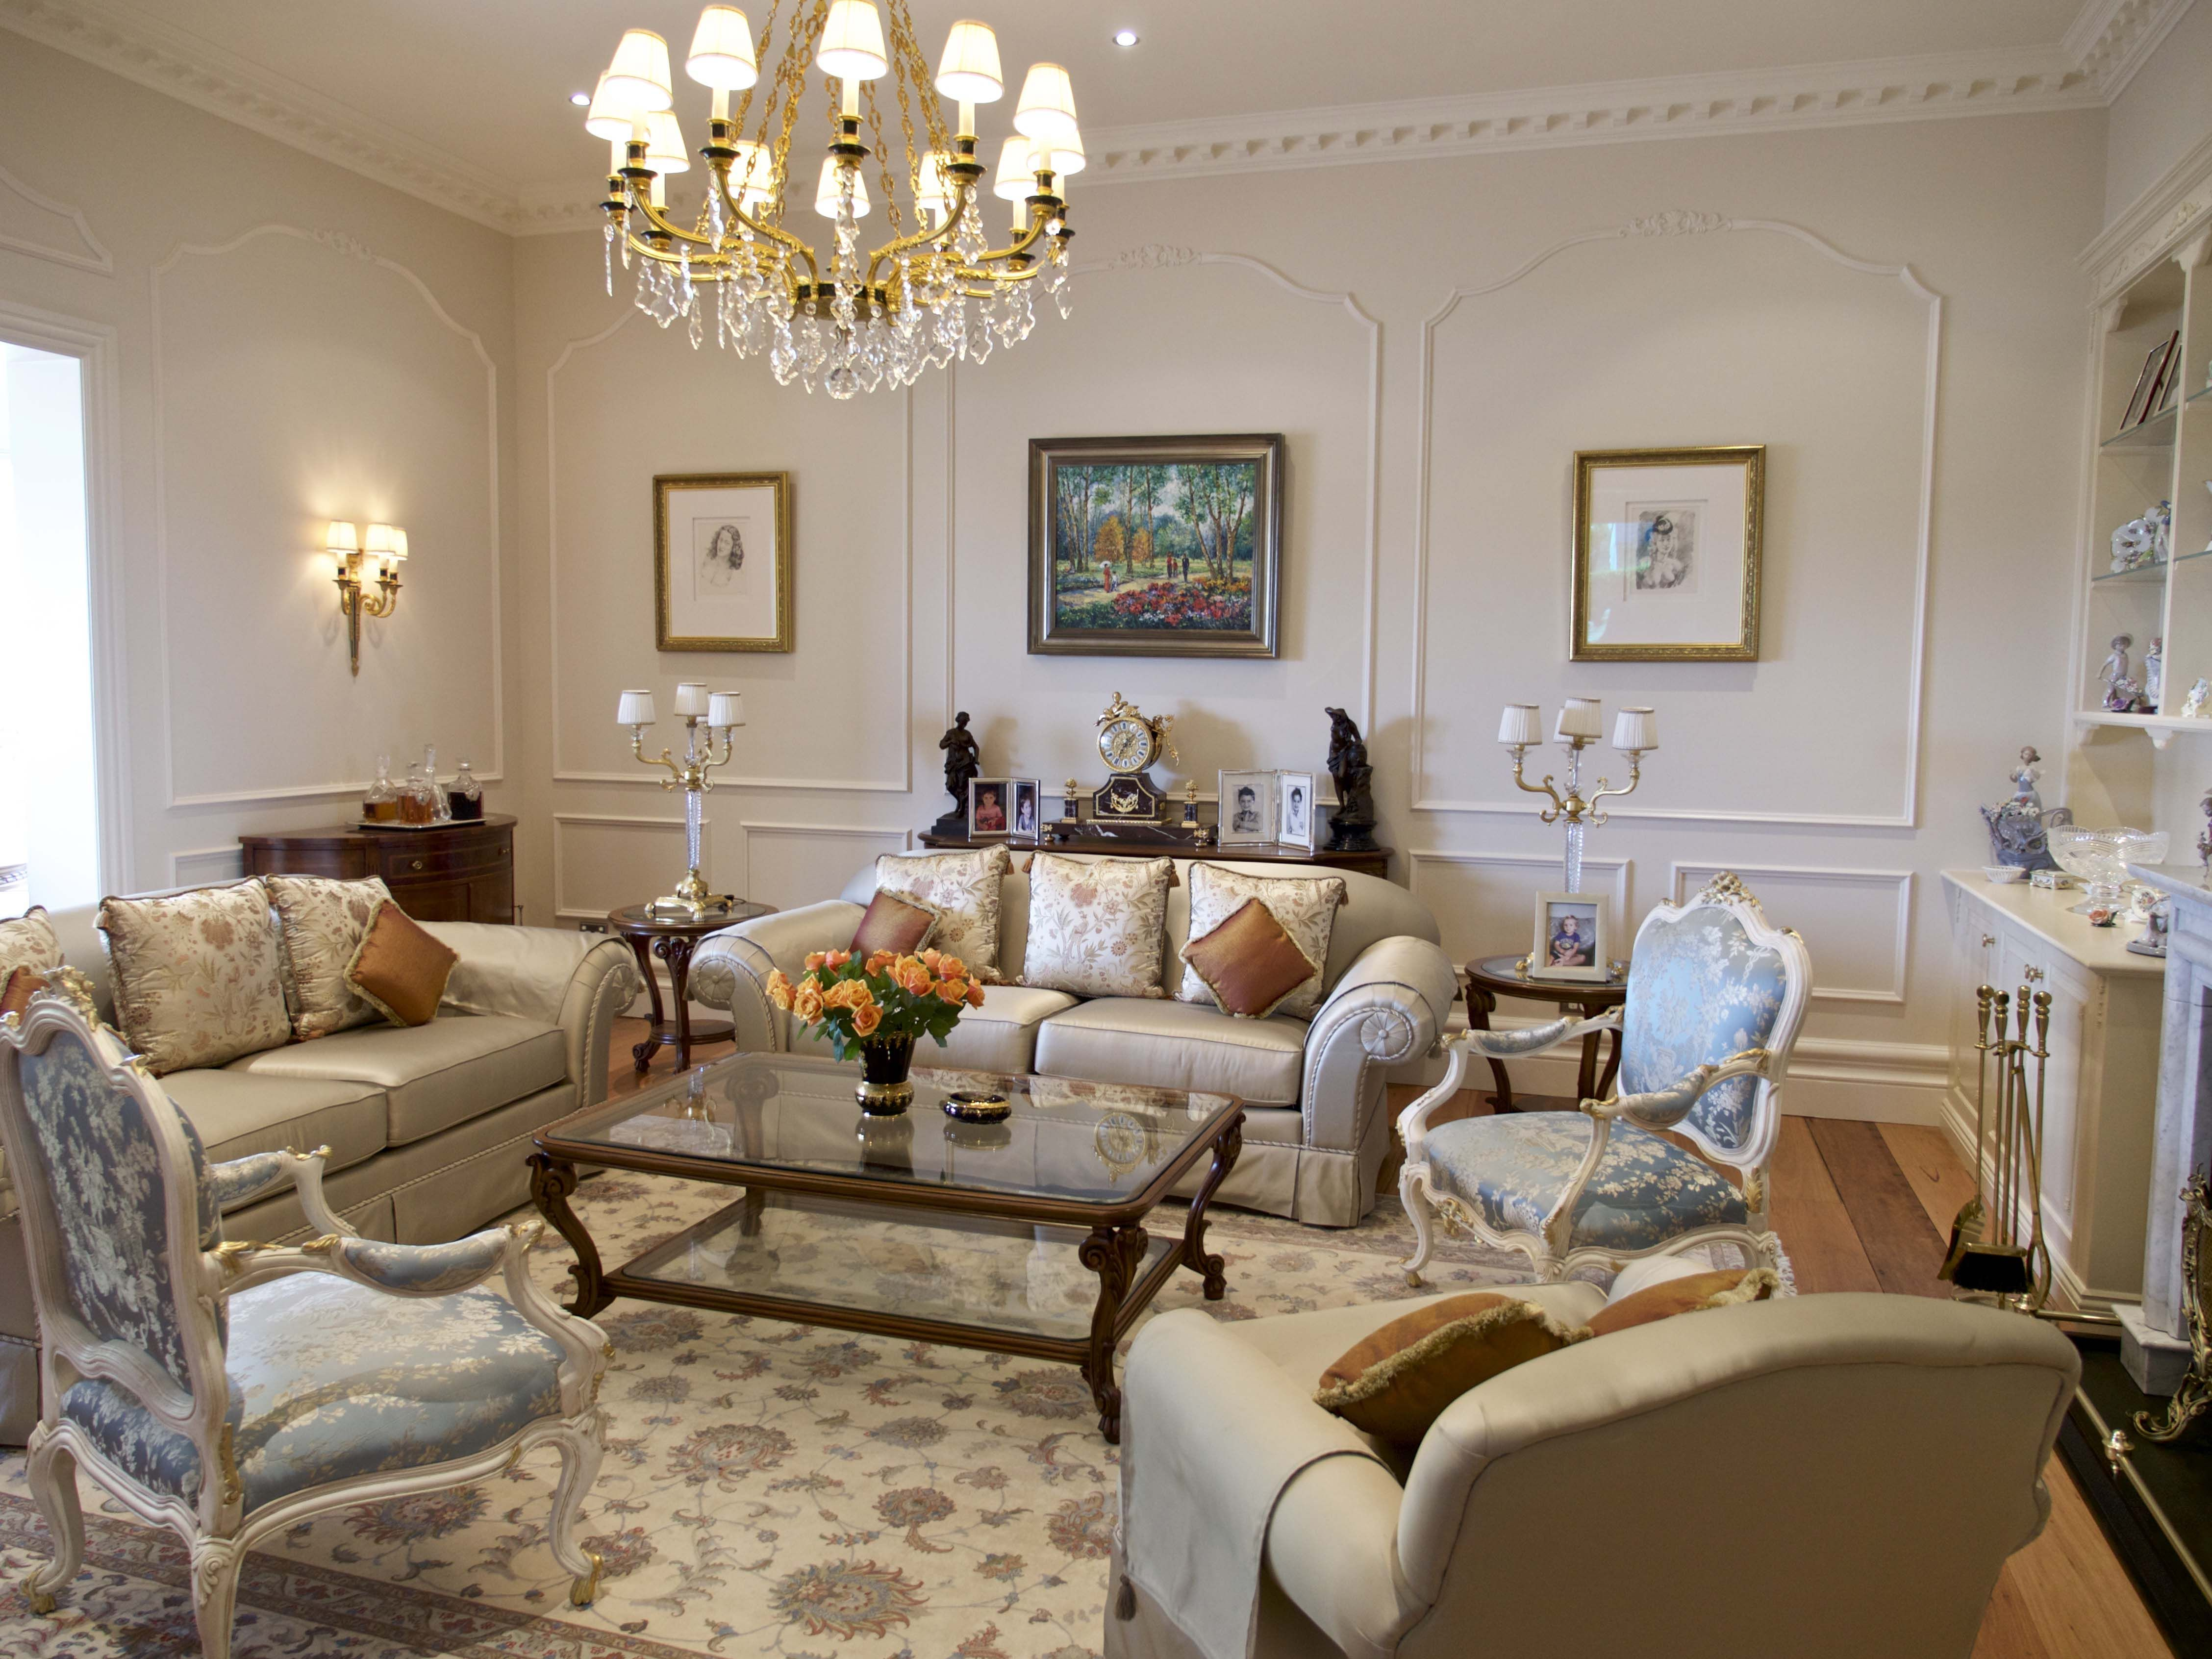 Formal Louis style salon - French provincial style in Sydney ...